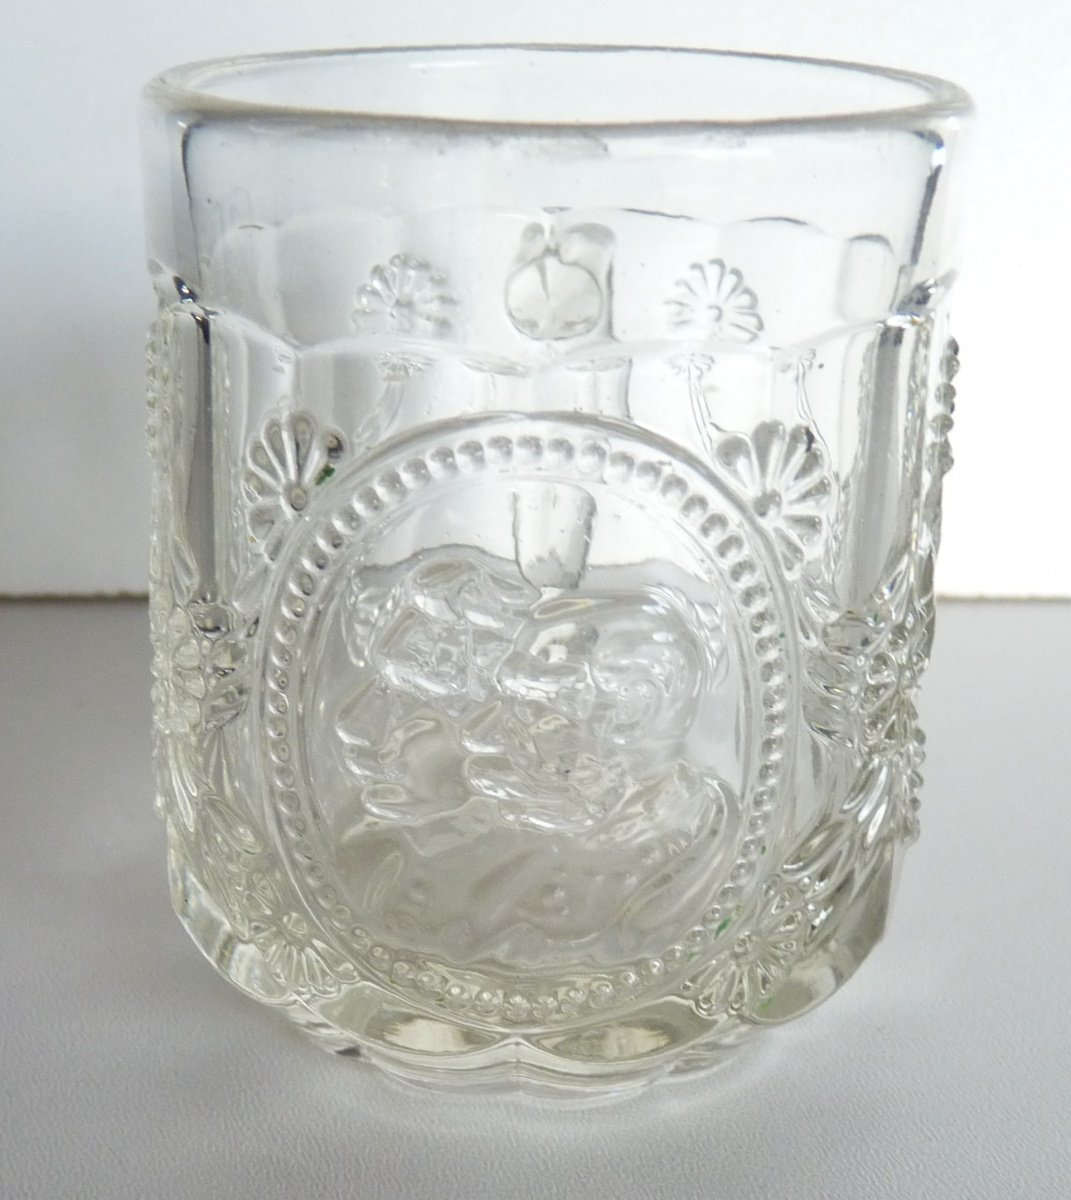 Clear glass mug ( glass ) with portraits of emperor Franz Joseph and Willhelm